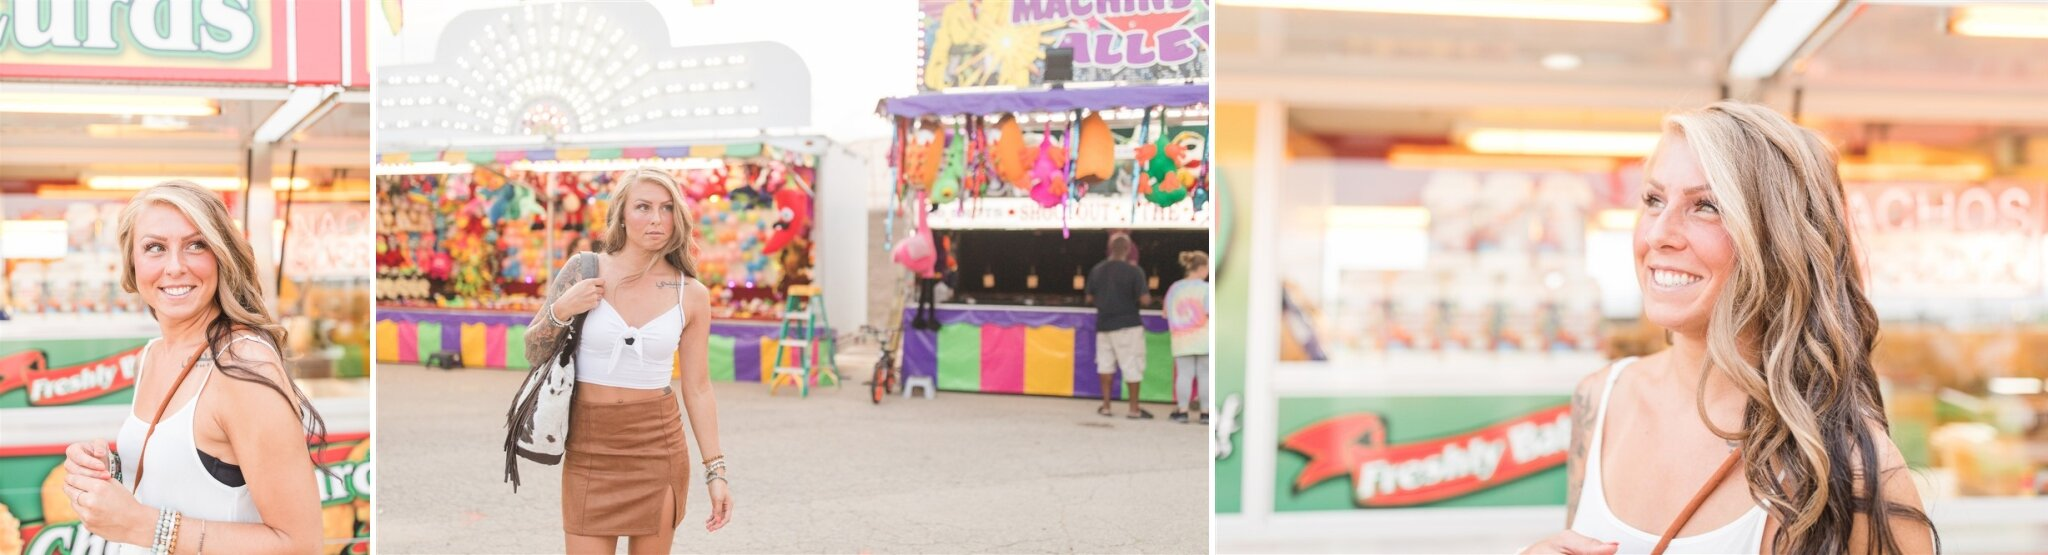 Fun branding photo shoot at the Outagamie County Fair, in Seymour, WI. Love the lights from the carnival games in the background.